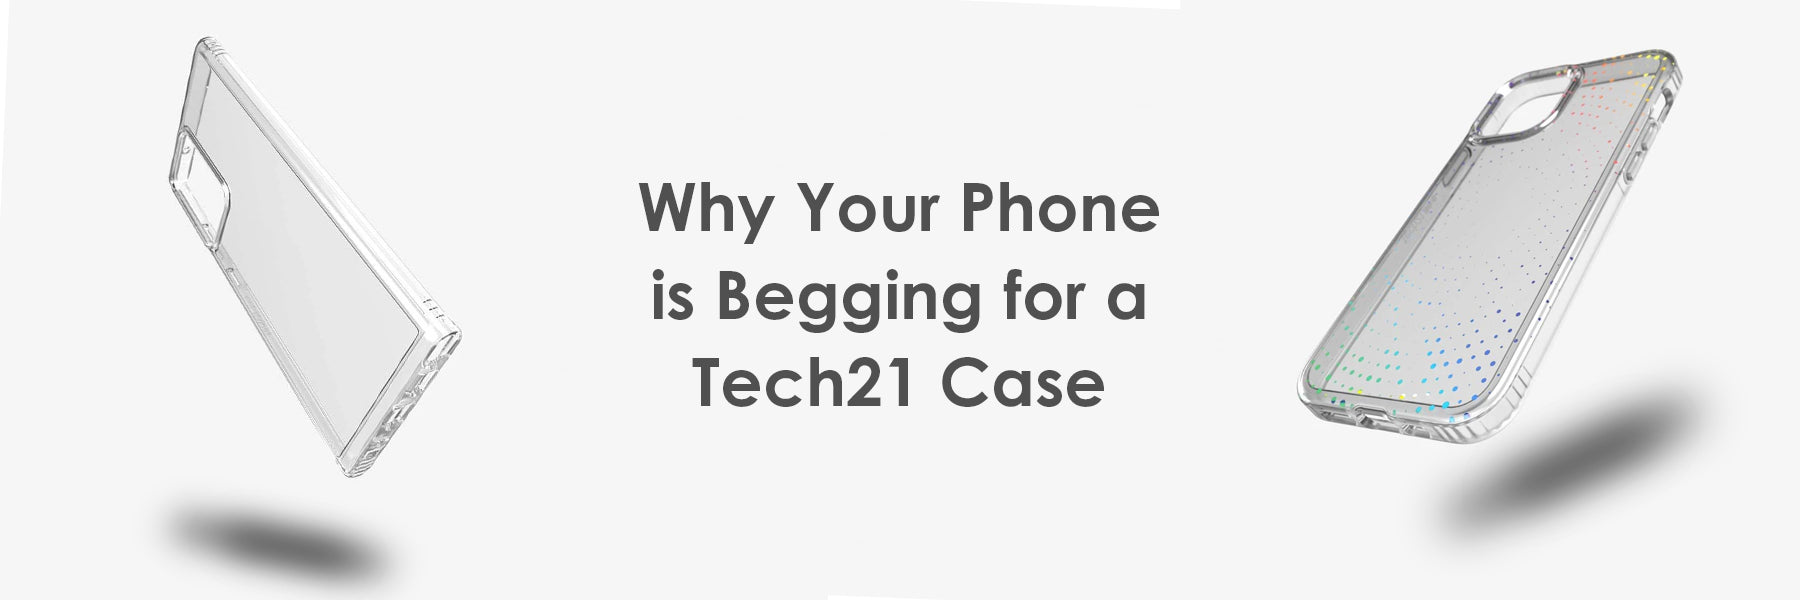 Why Your Phone is Begging for a Tech21 Case